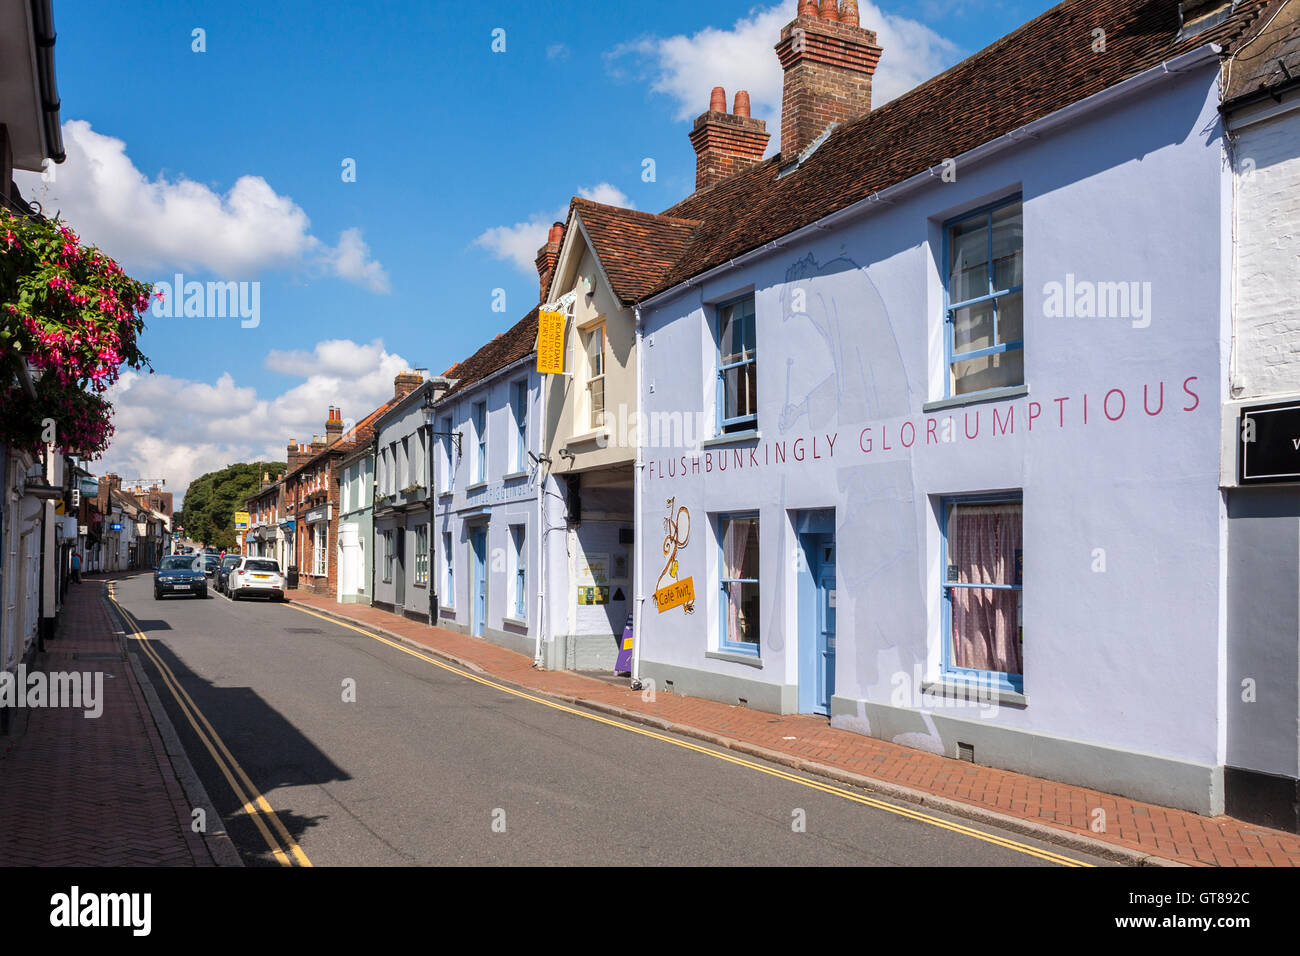 https://c7.alamy.com/comp/GT892C/roald-dahl-museum-great-missenden-buckinghamshire-england-gb-uk-GT892C.jpg